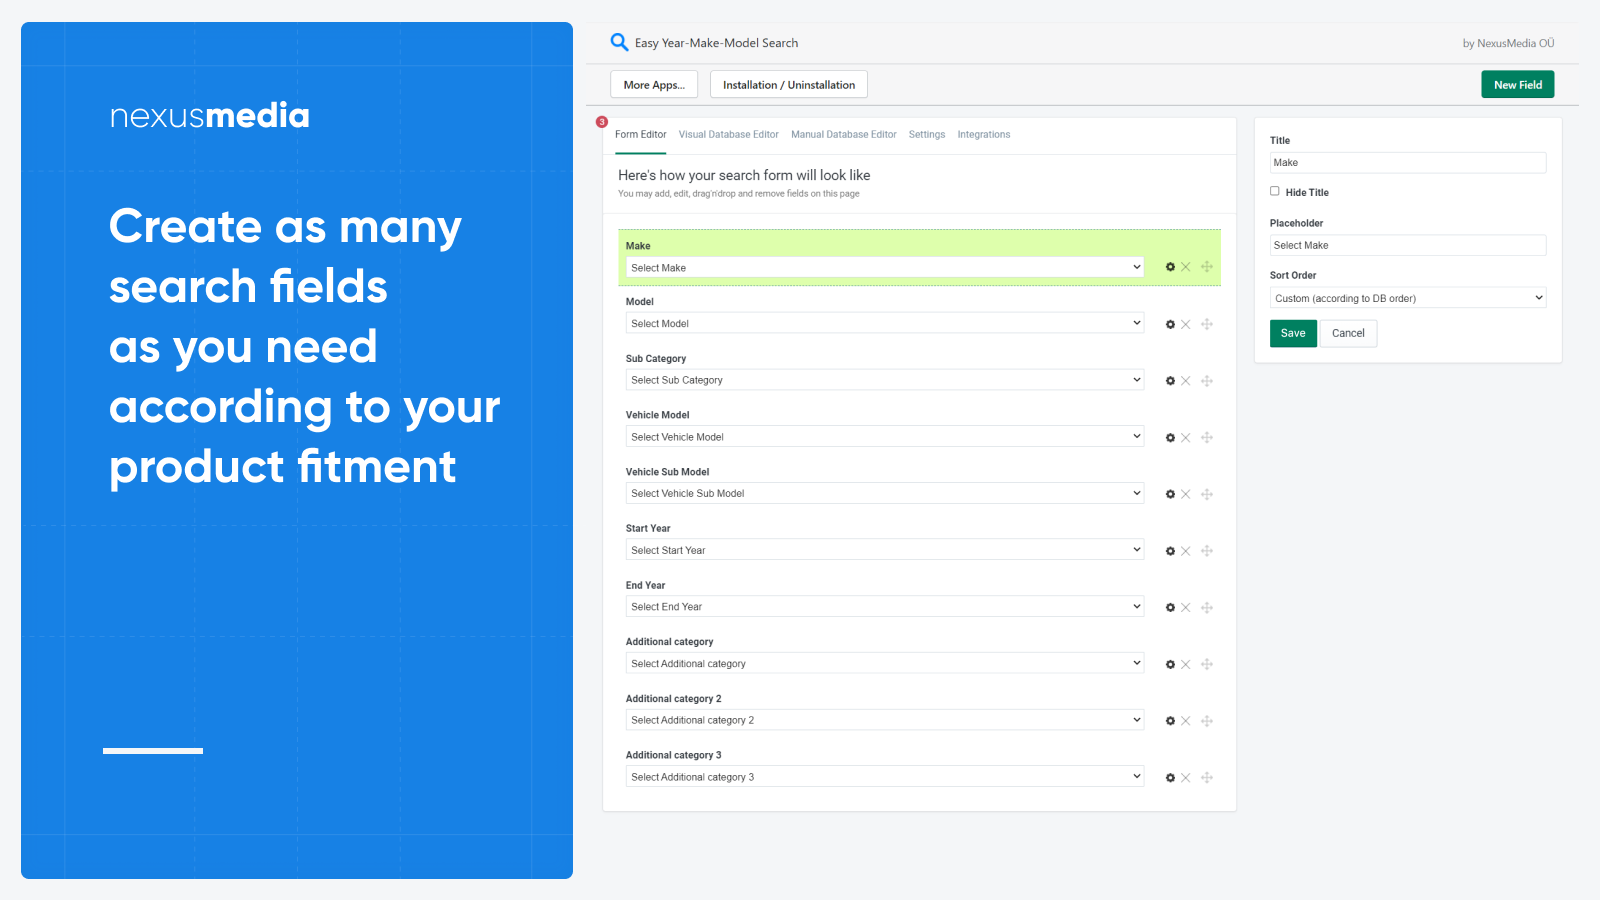 Create as many search fields as you need